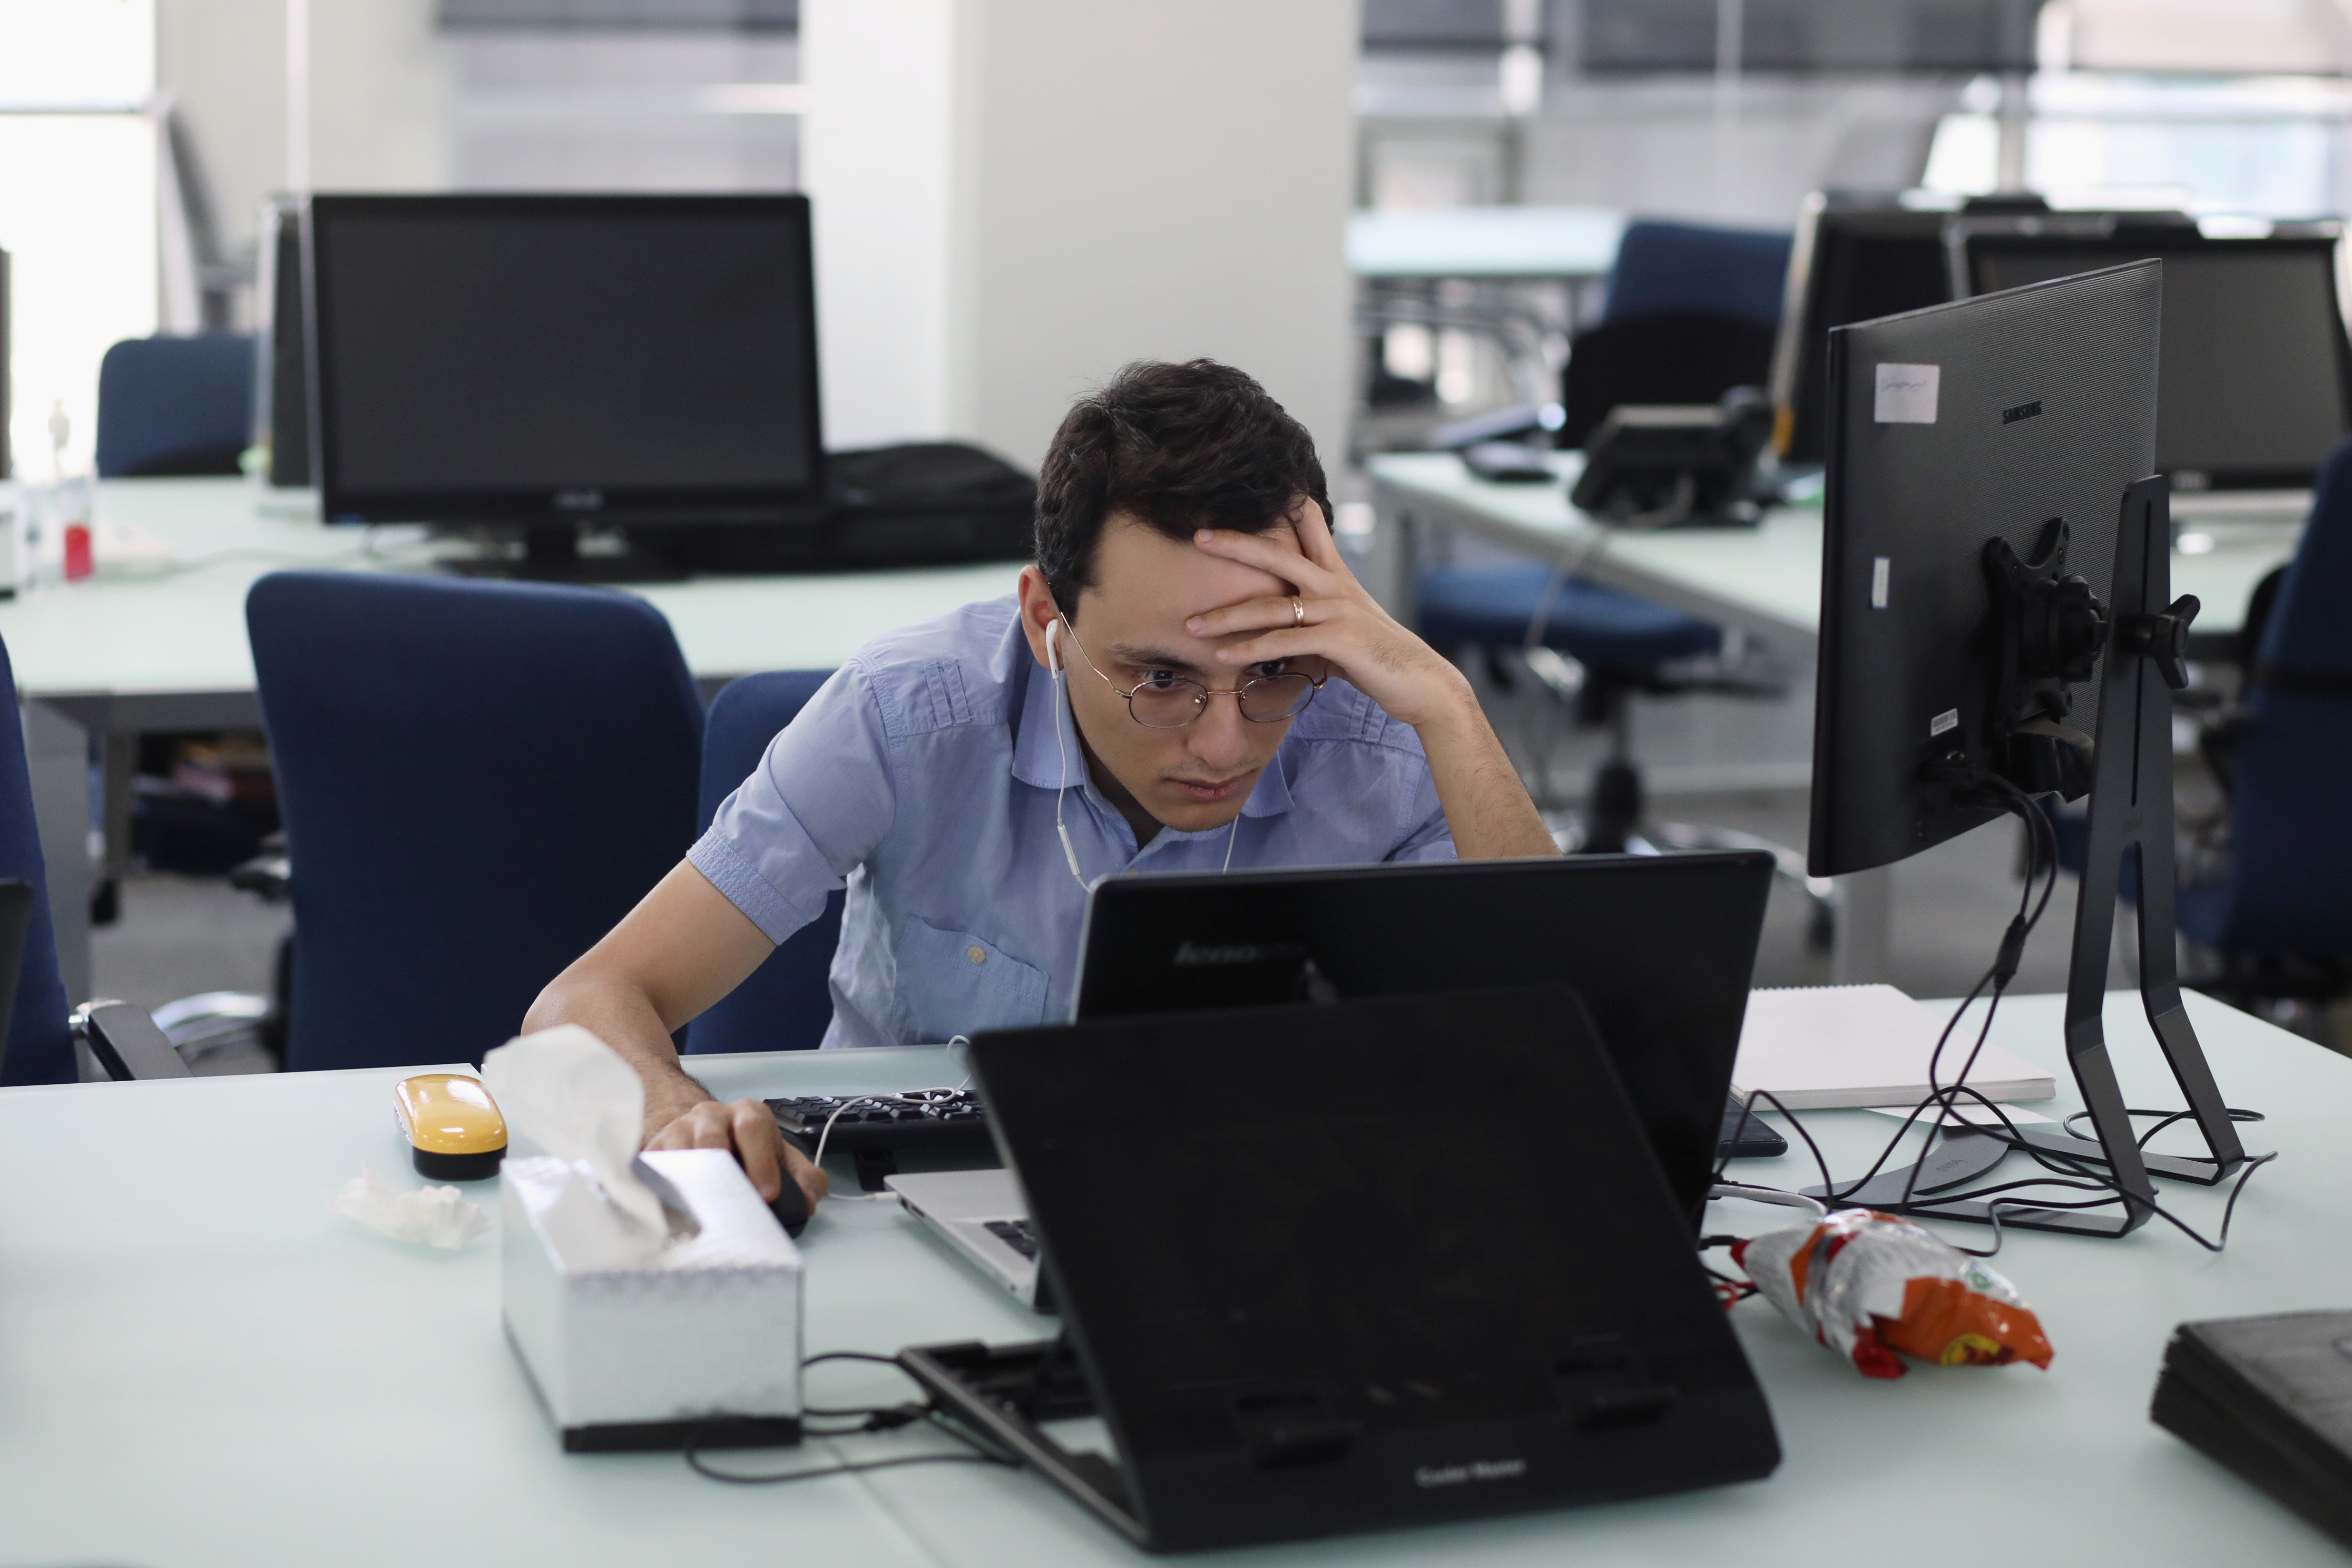 An employee of a stock brokerage firm monitors stock prices on his computer, following the outbreak of the coronavirus disease (COVID-19), at a brokerage house in Tehran, Iran, May 12, 2020. Picture taken May 12, 2020. WANA (West Asia News Agency)/Ali Khara via REUTERS ATTENTION EDITORS - THIS PICTURE WAS PROVIDED BY A THIRD PARTY - RC2HOG9KDBJ5